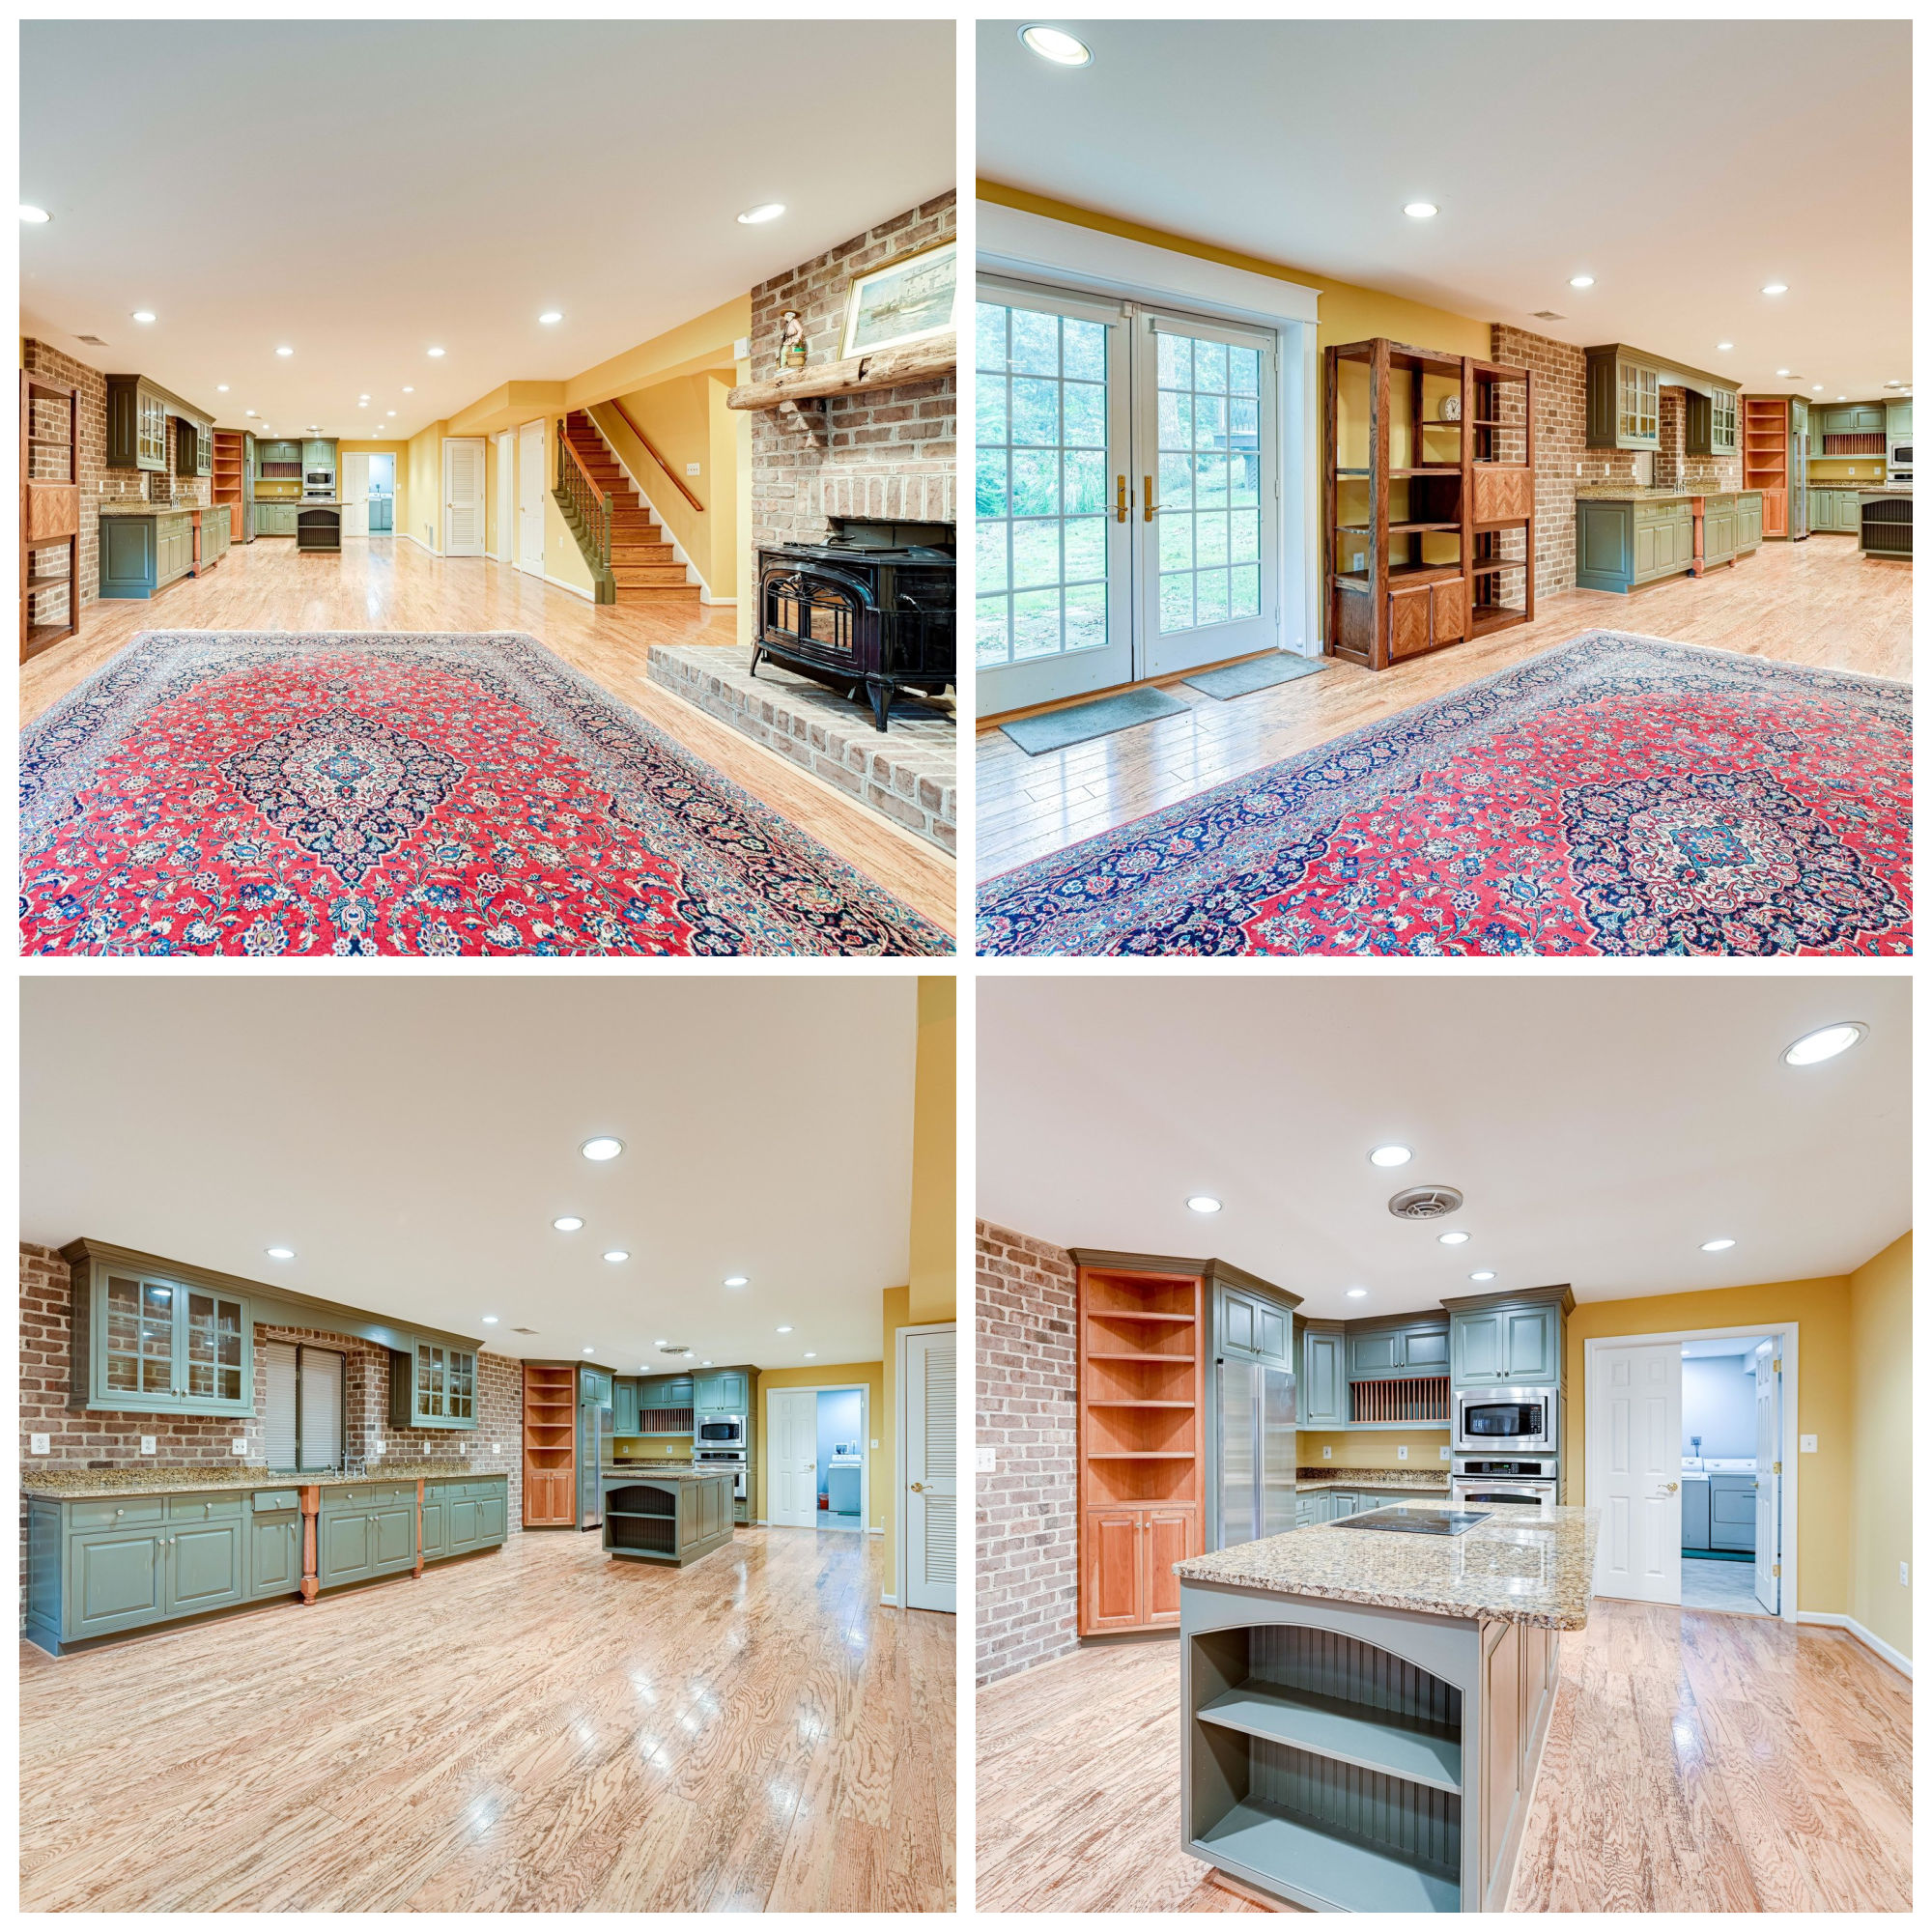 9220 Hidden Creek Dr, Great Falls- Lower Level Rec Room and Kitchen